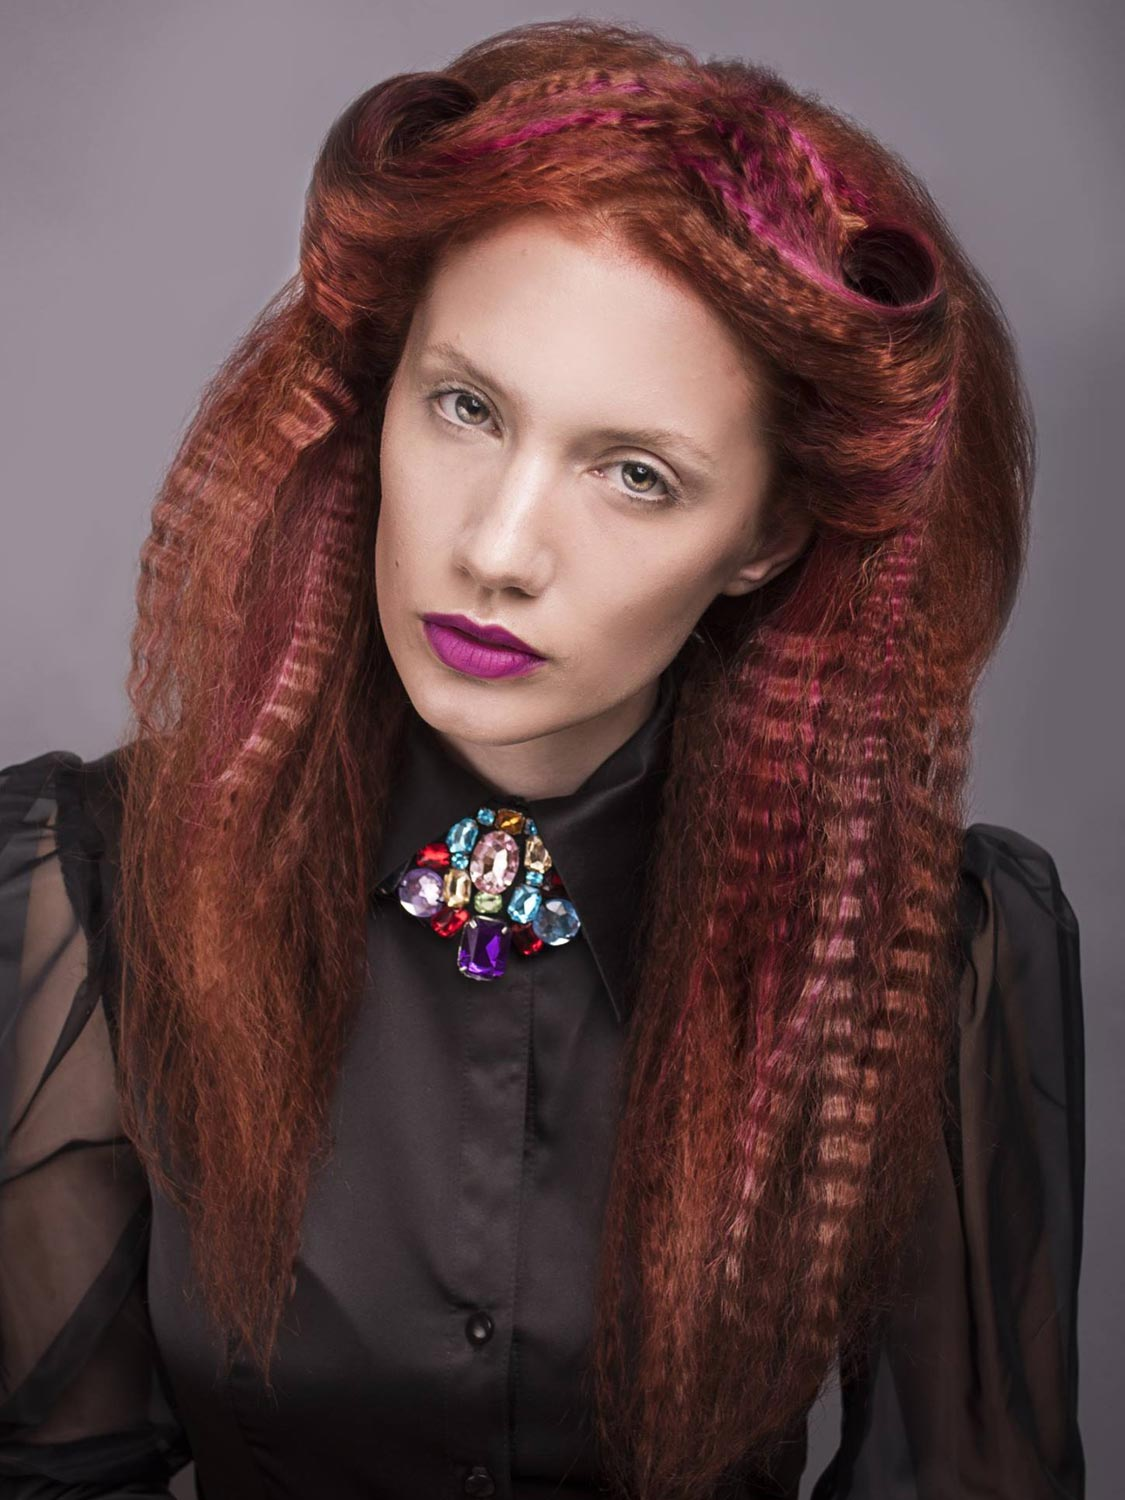 Andrea Medková, Salon MiMaXIV, Brno – nominace v soutěžní kategorii Color Zoom Collection 2015 GLOBAL PARTNER COLORIST.